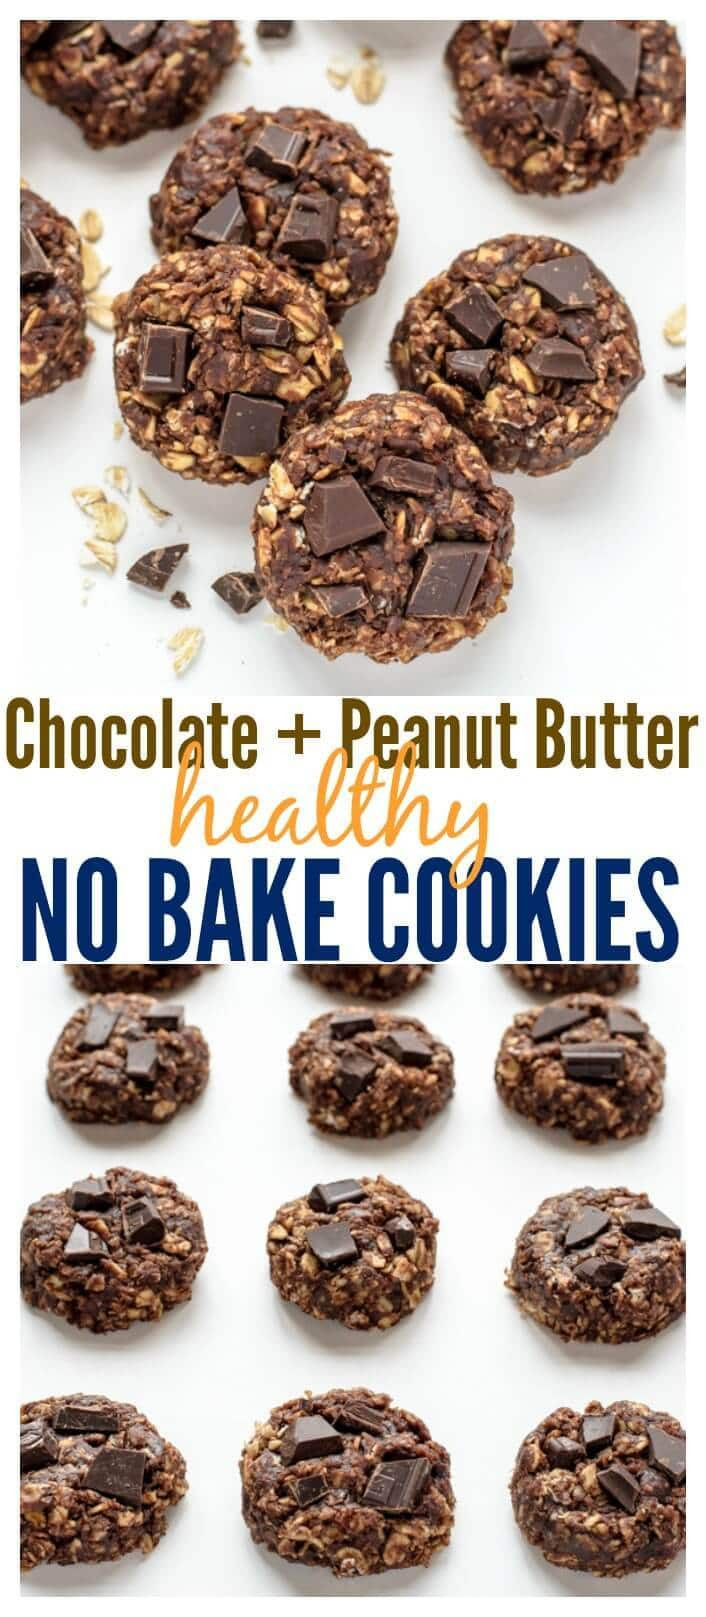 Healthy Chocolate Peanut Butter Cookies  Healthy No Bake Cookies with Chocolate and Peanut Butter